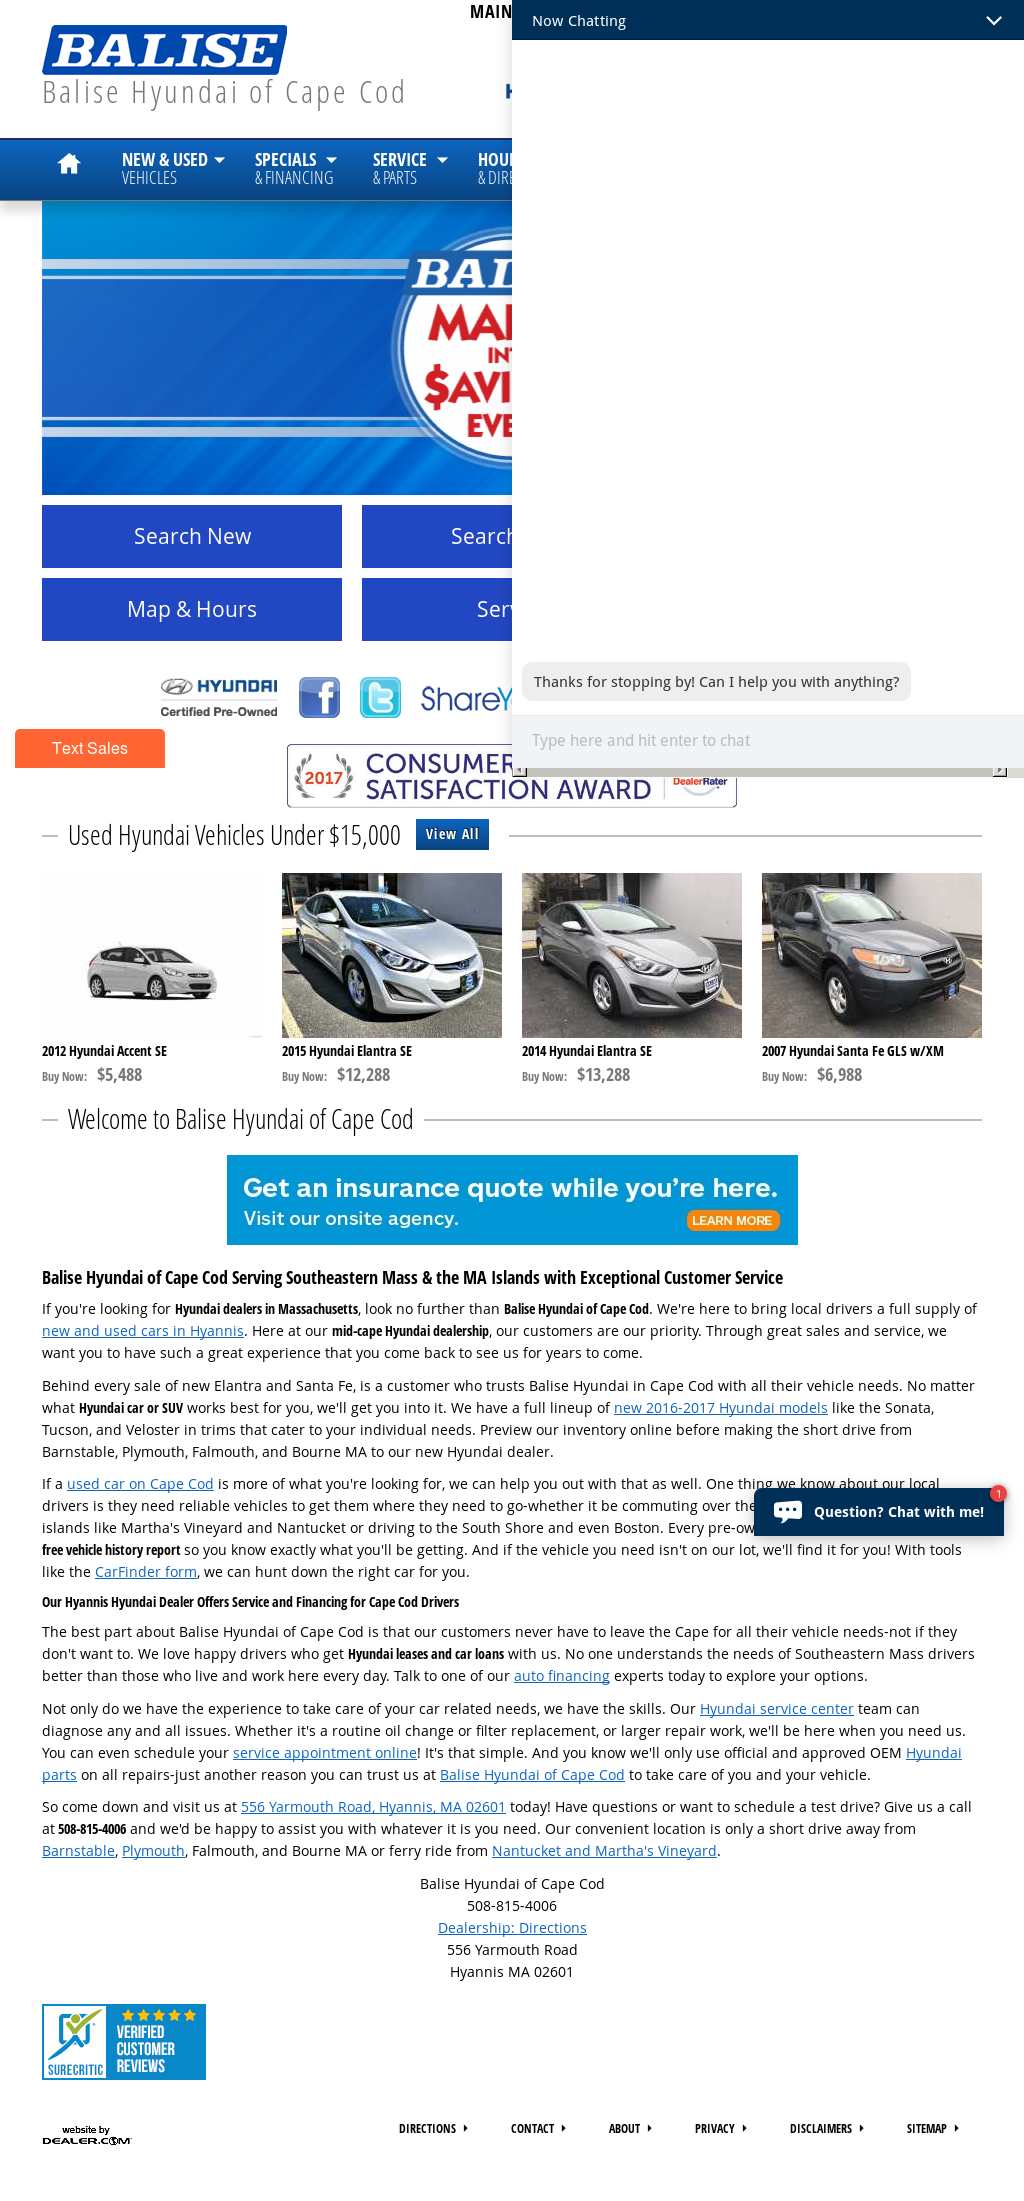 Balise Hyundai Of Cape Cod Website History